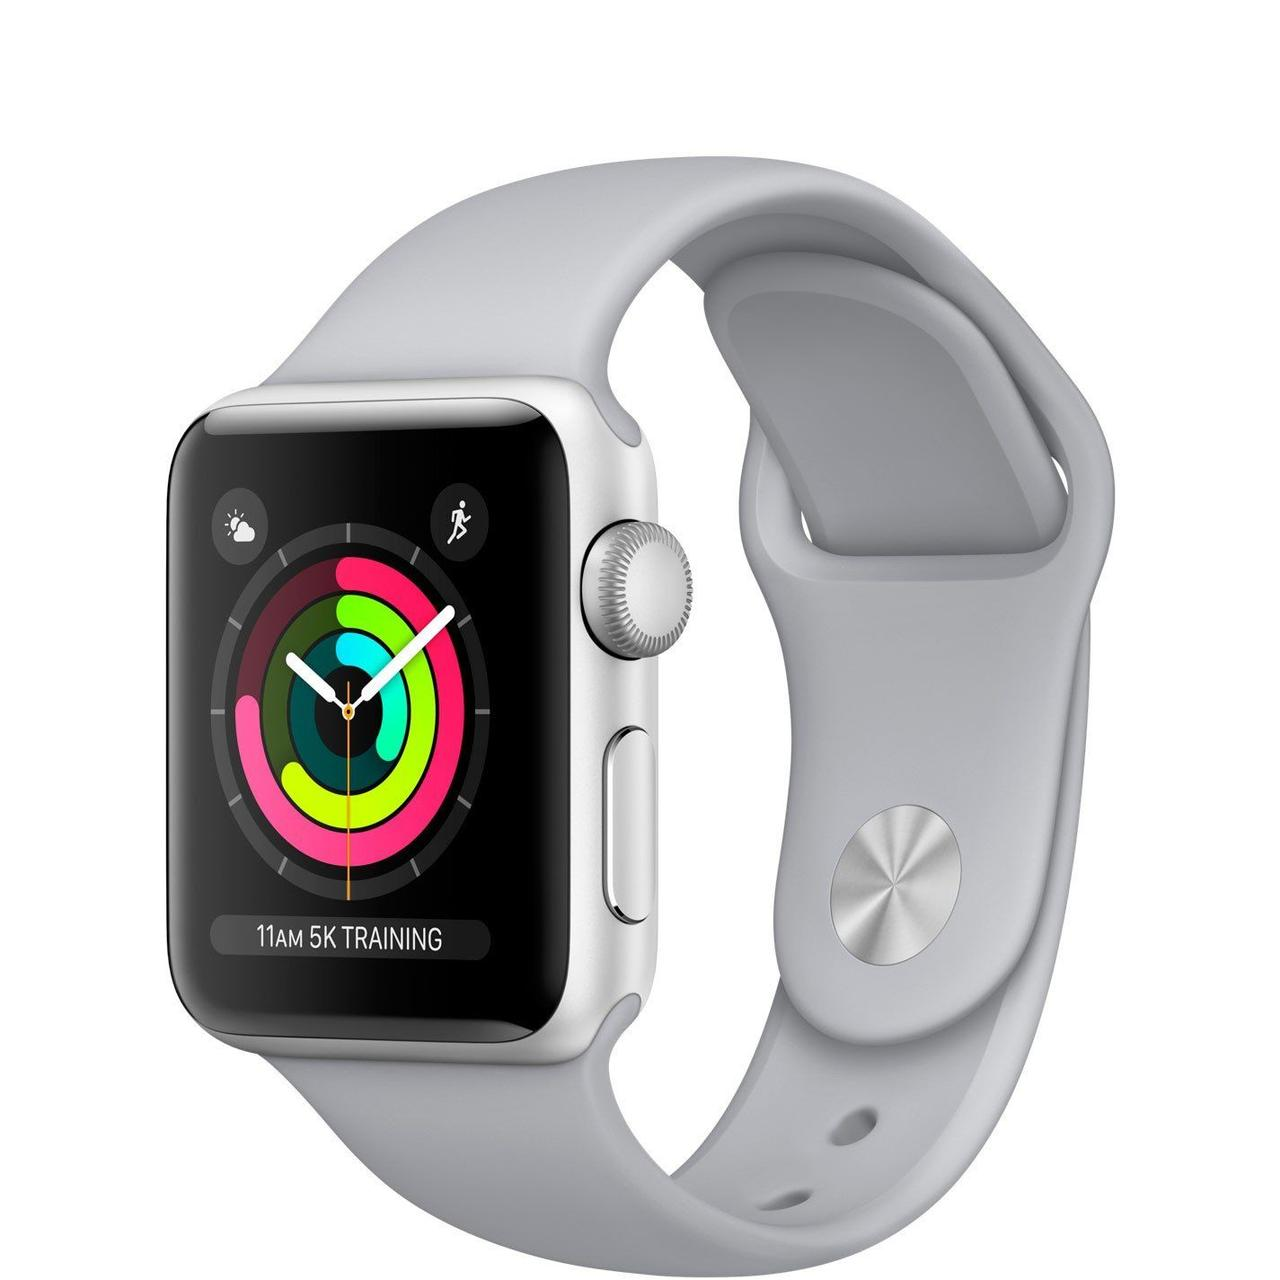 Apple Watch Series 3 GPS 38mm Silver Aluminum Case with Fog Sport Band (MQKU2)